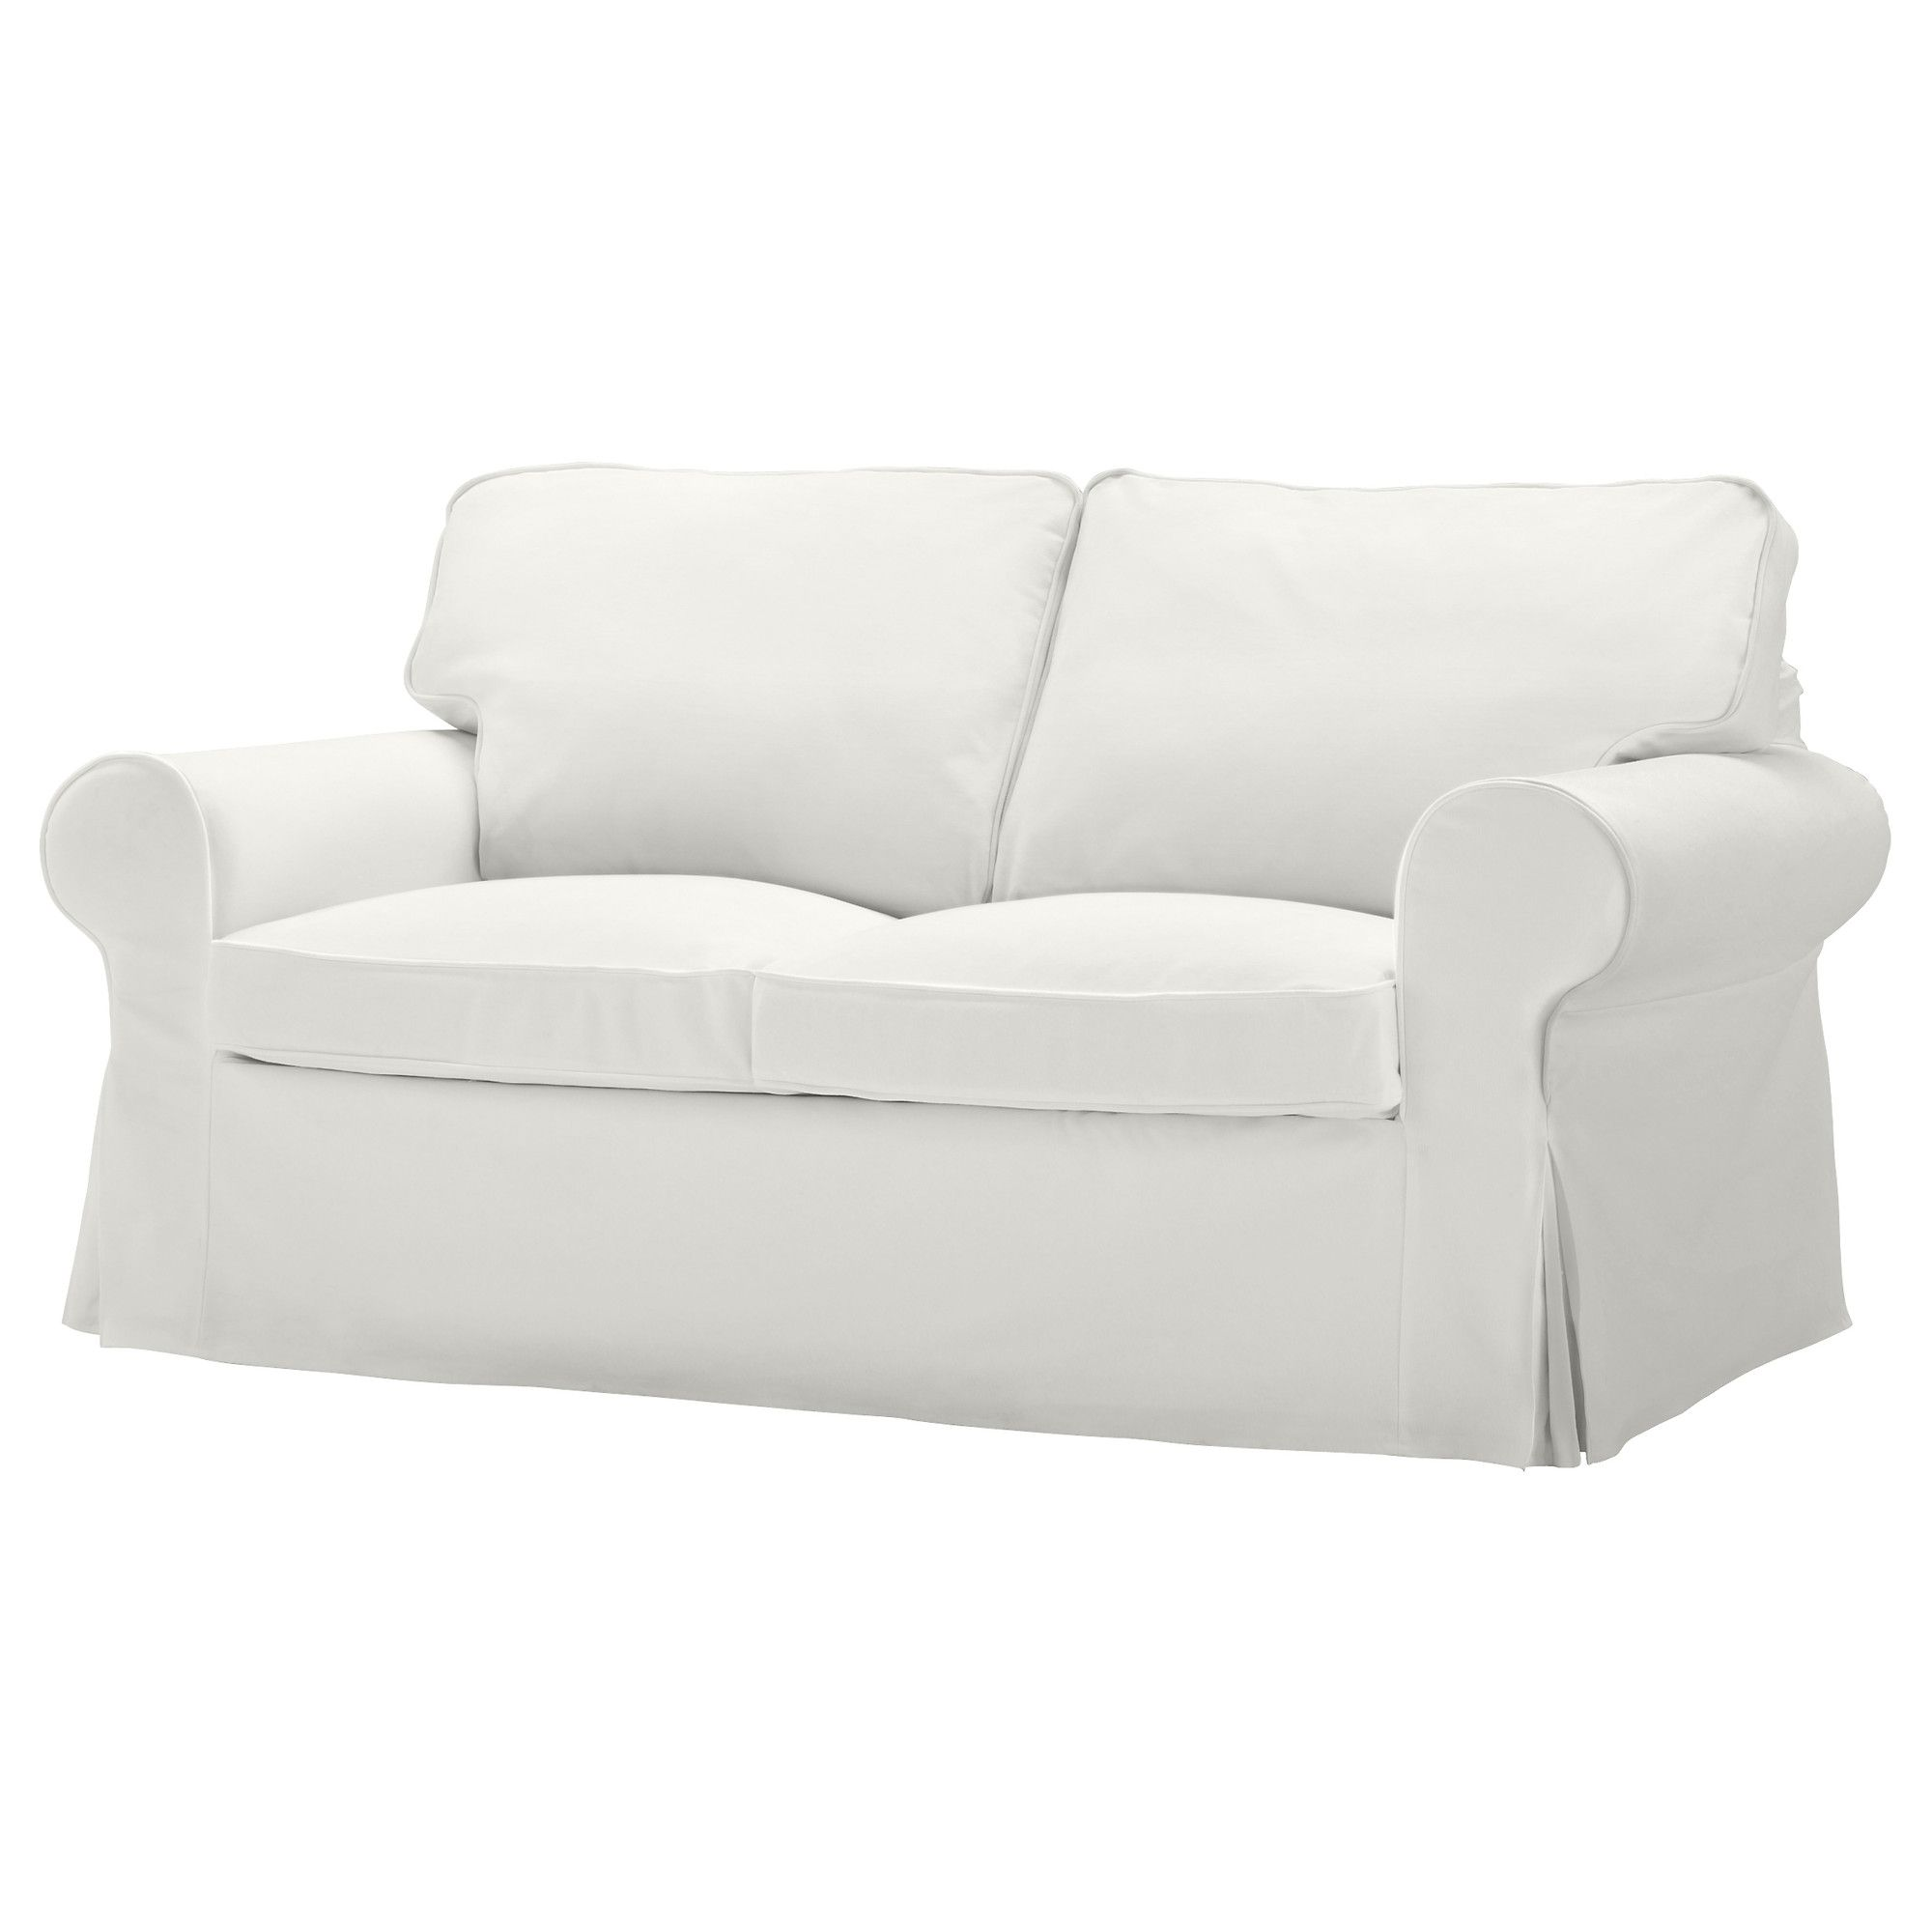 old ikea chair covers chairs for back pain ektorp two seat sofa blekinge white my style pinterest